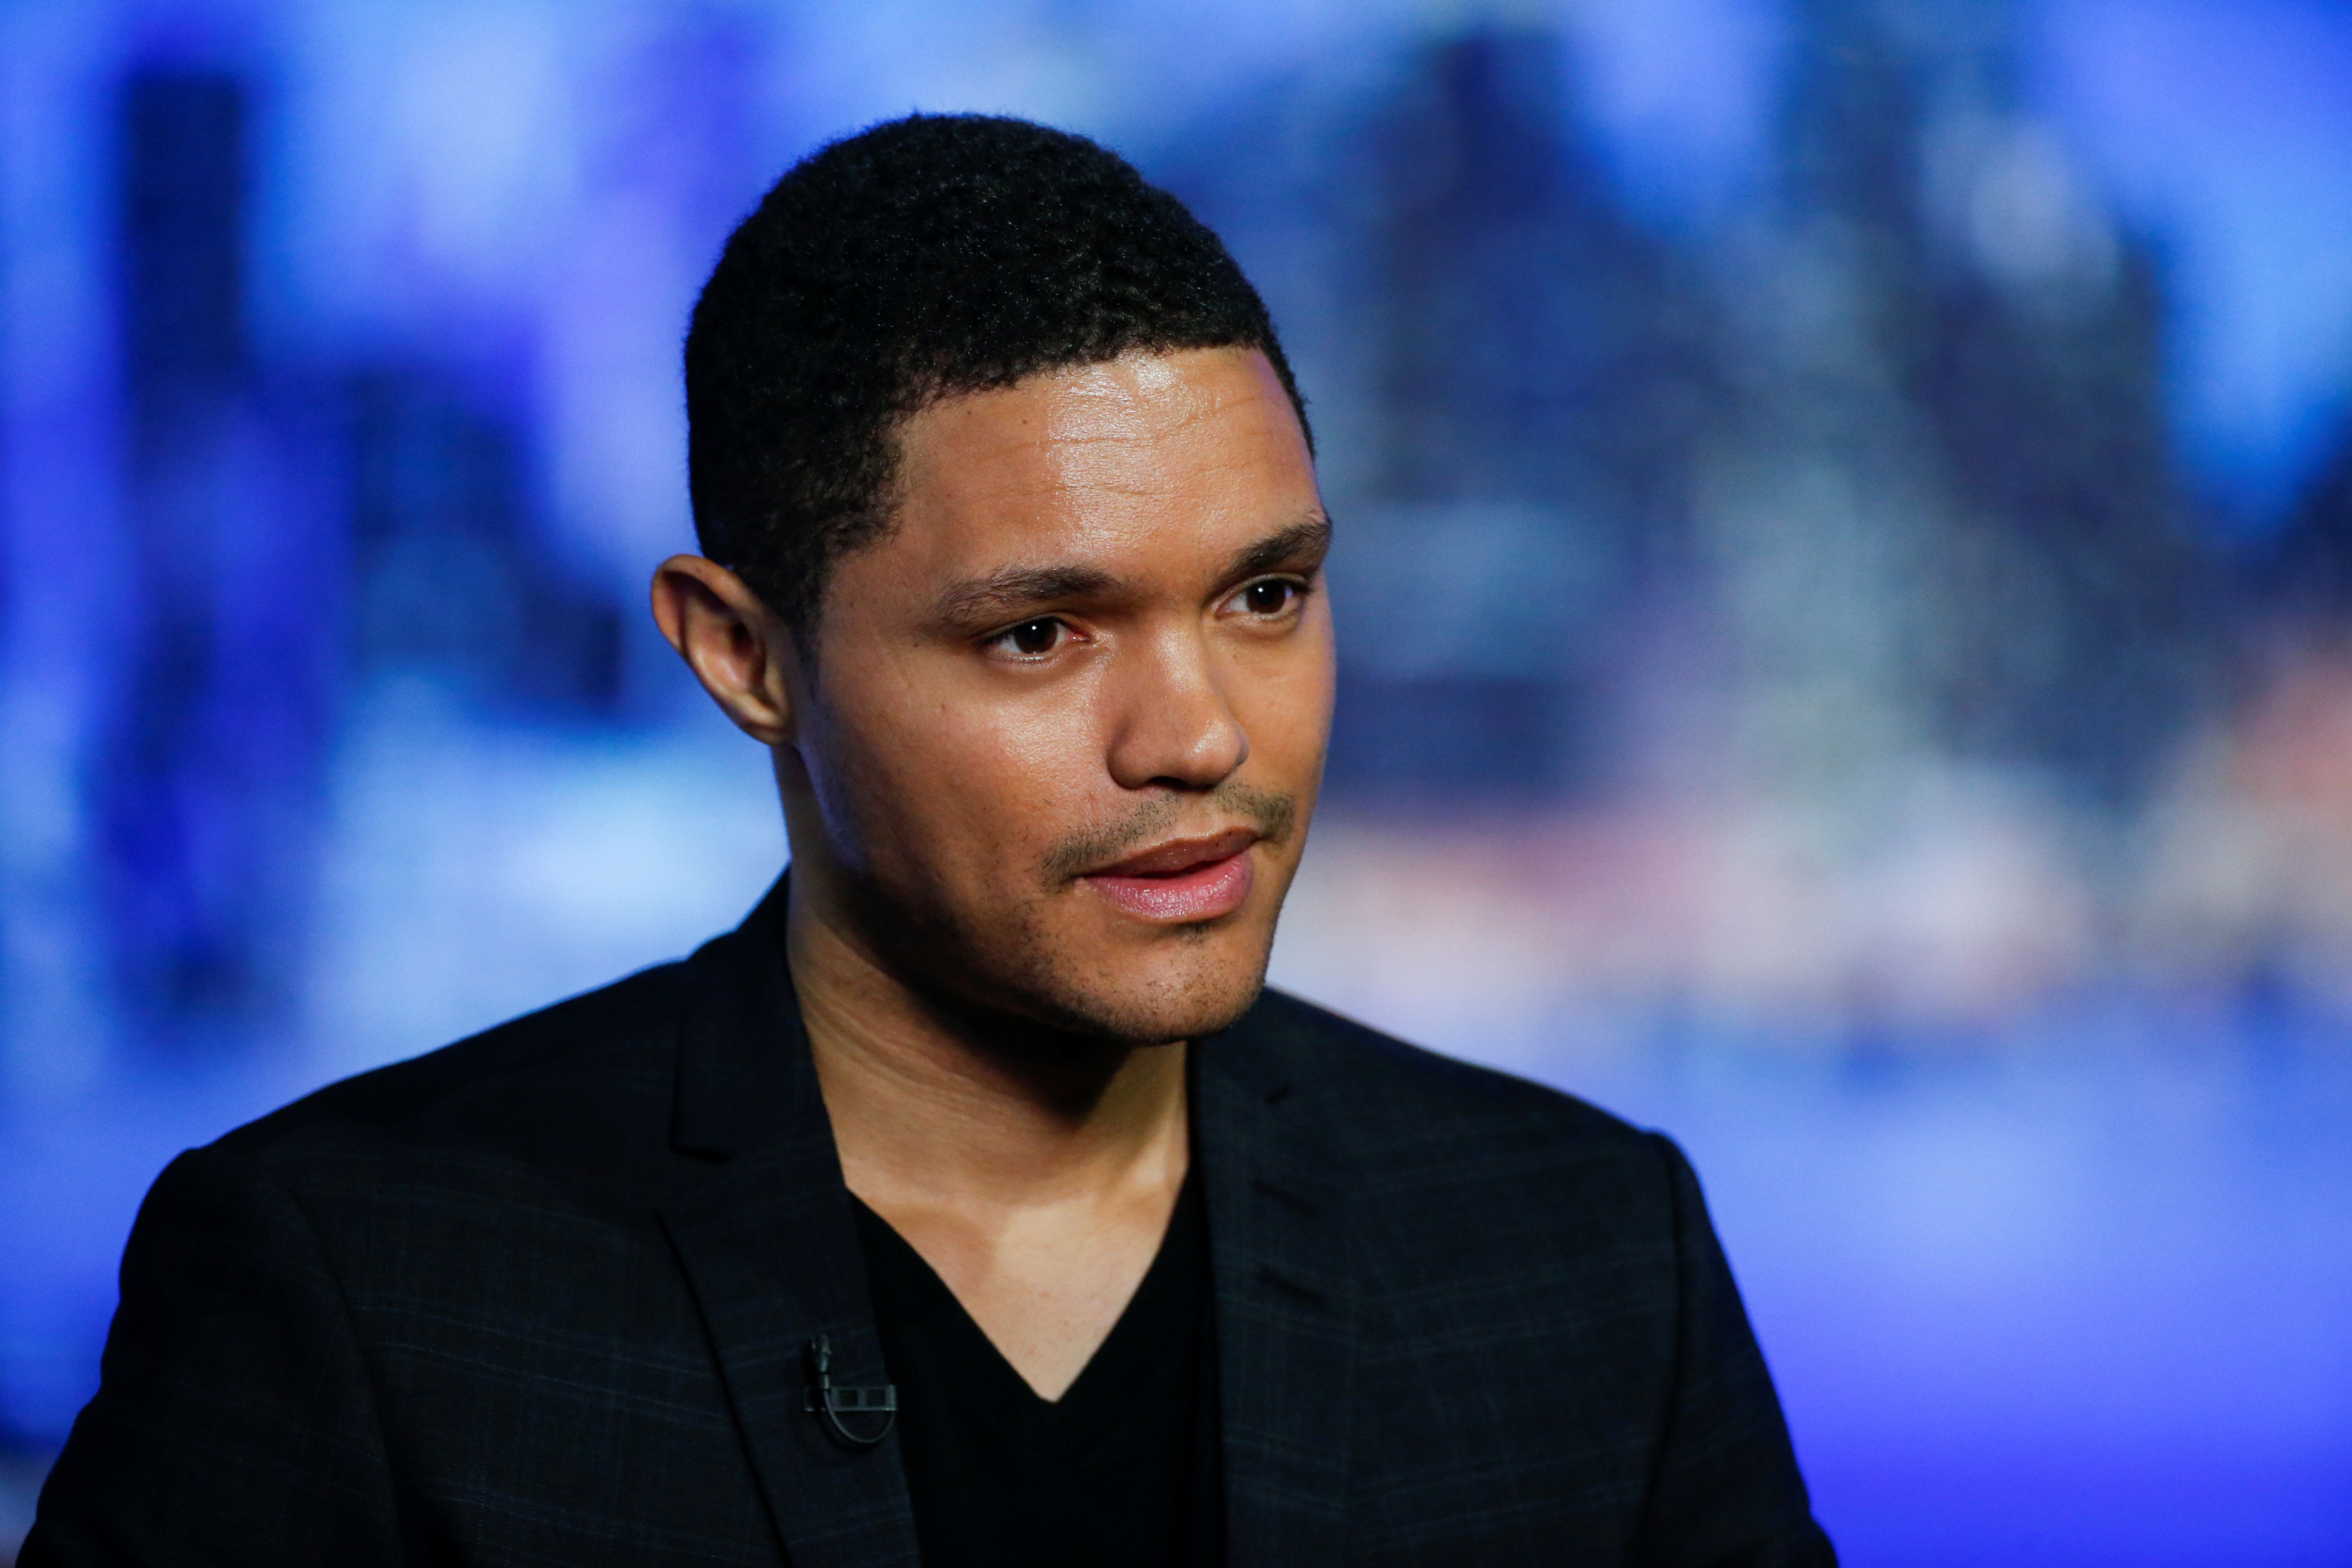 Television host Trevor Noah attends an interview with Reuters in New York July 7, 2016. REUTERS/Eduardo Munoz